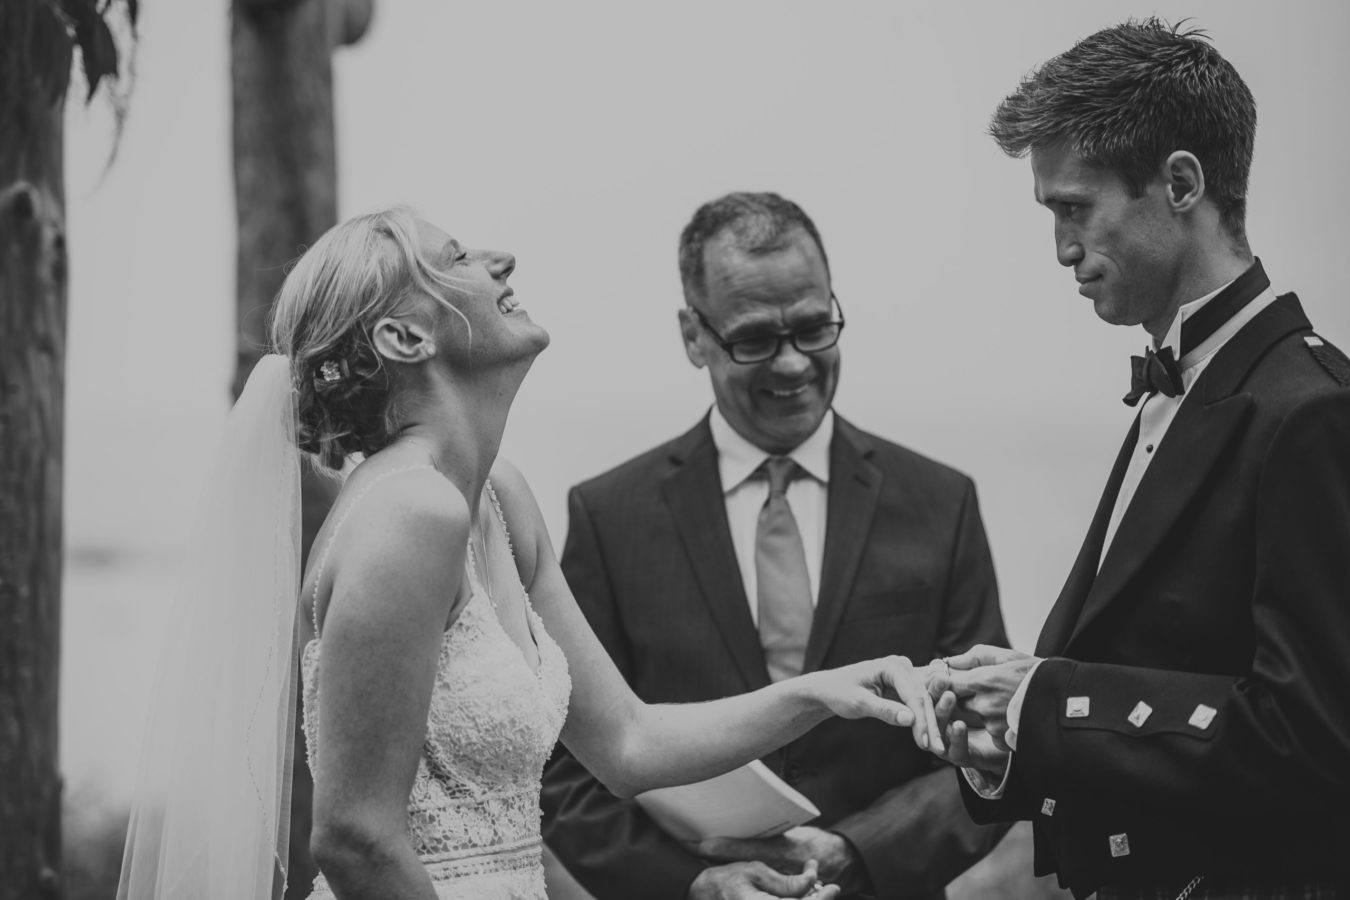 bride throwing her head back laughing while her groom tries to put on her ring during their wedding ceremony